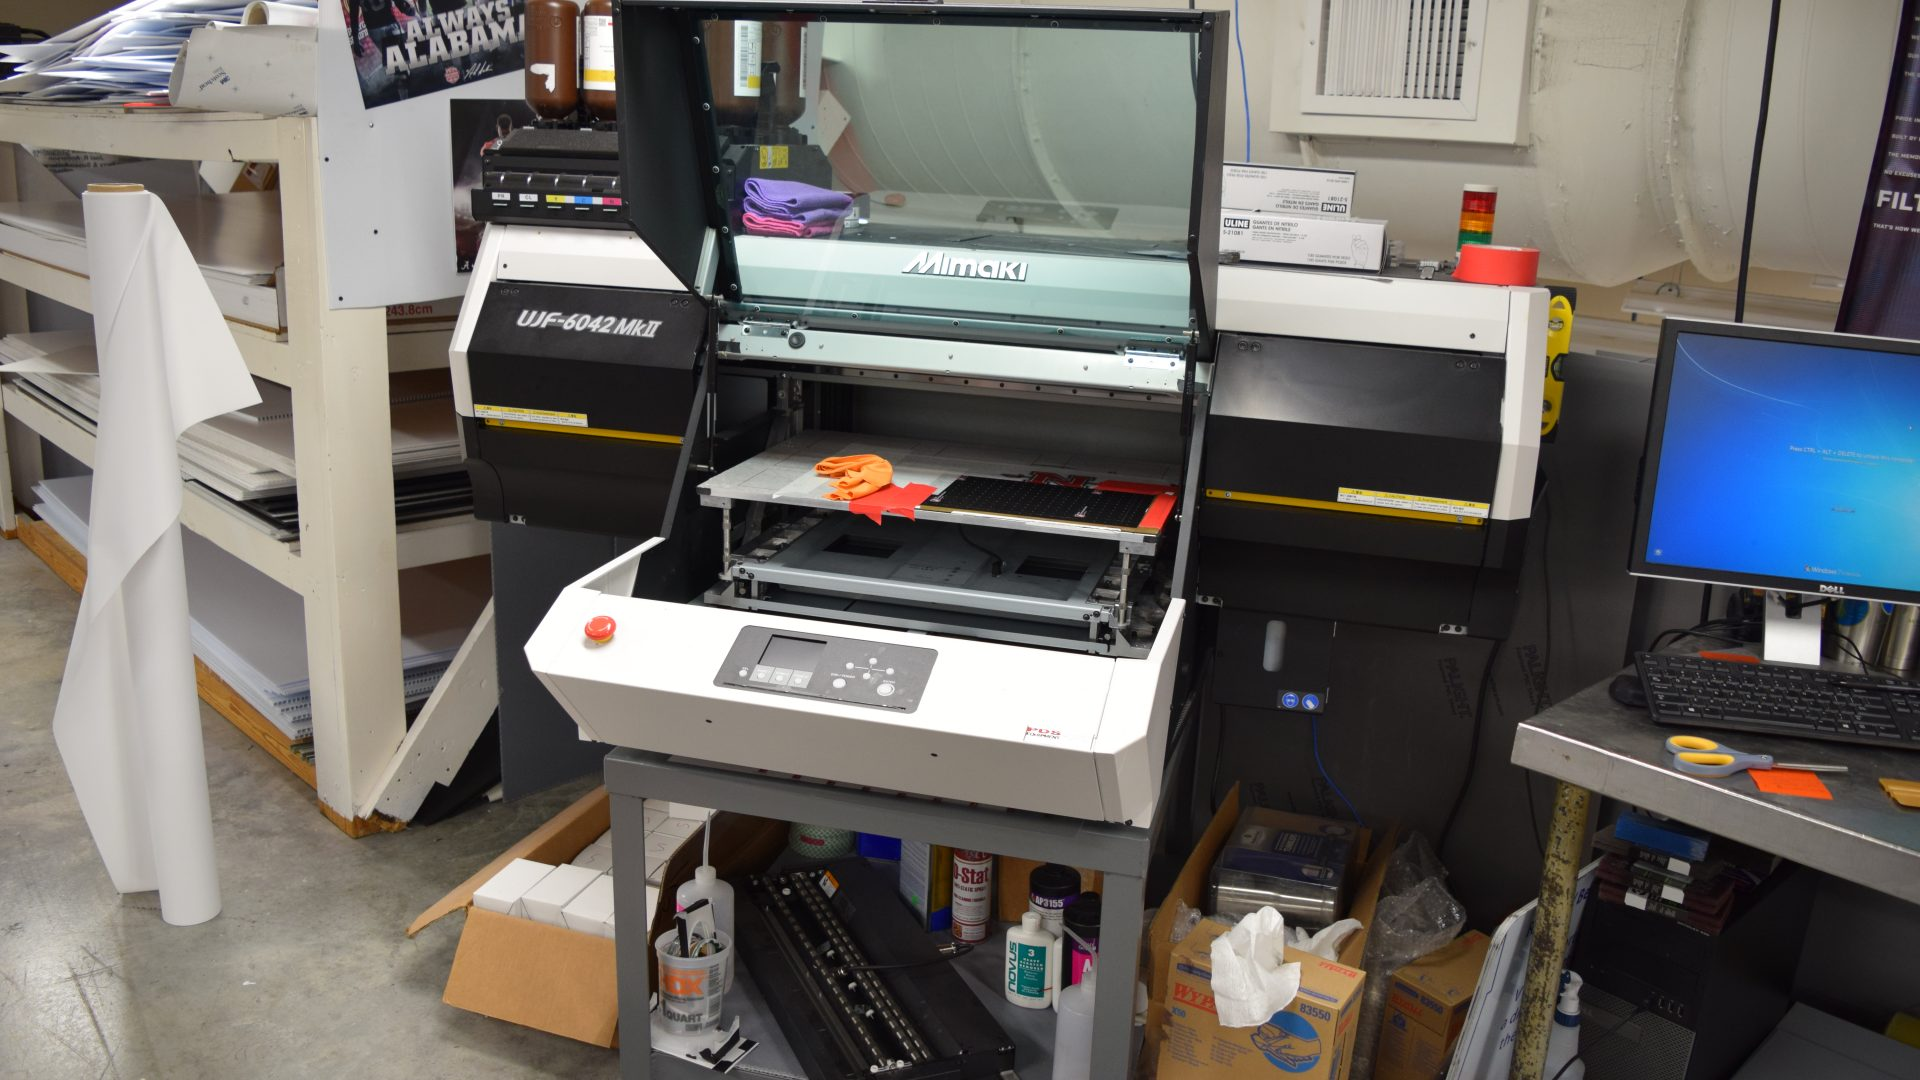 Printing – Printing Services | The University of Alabama